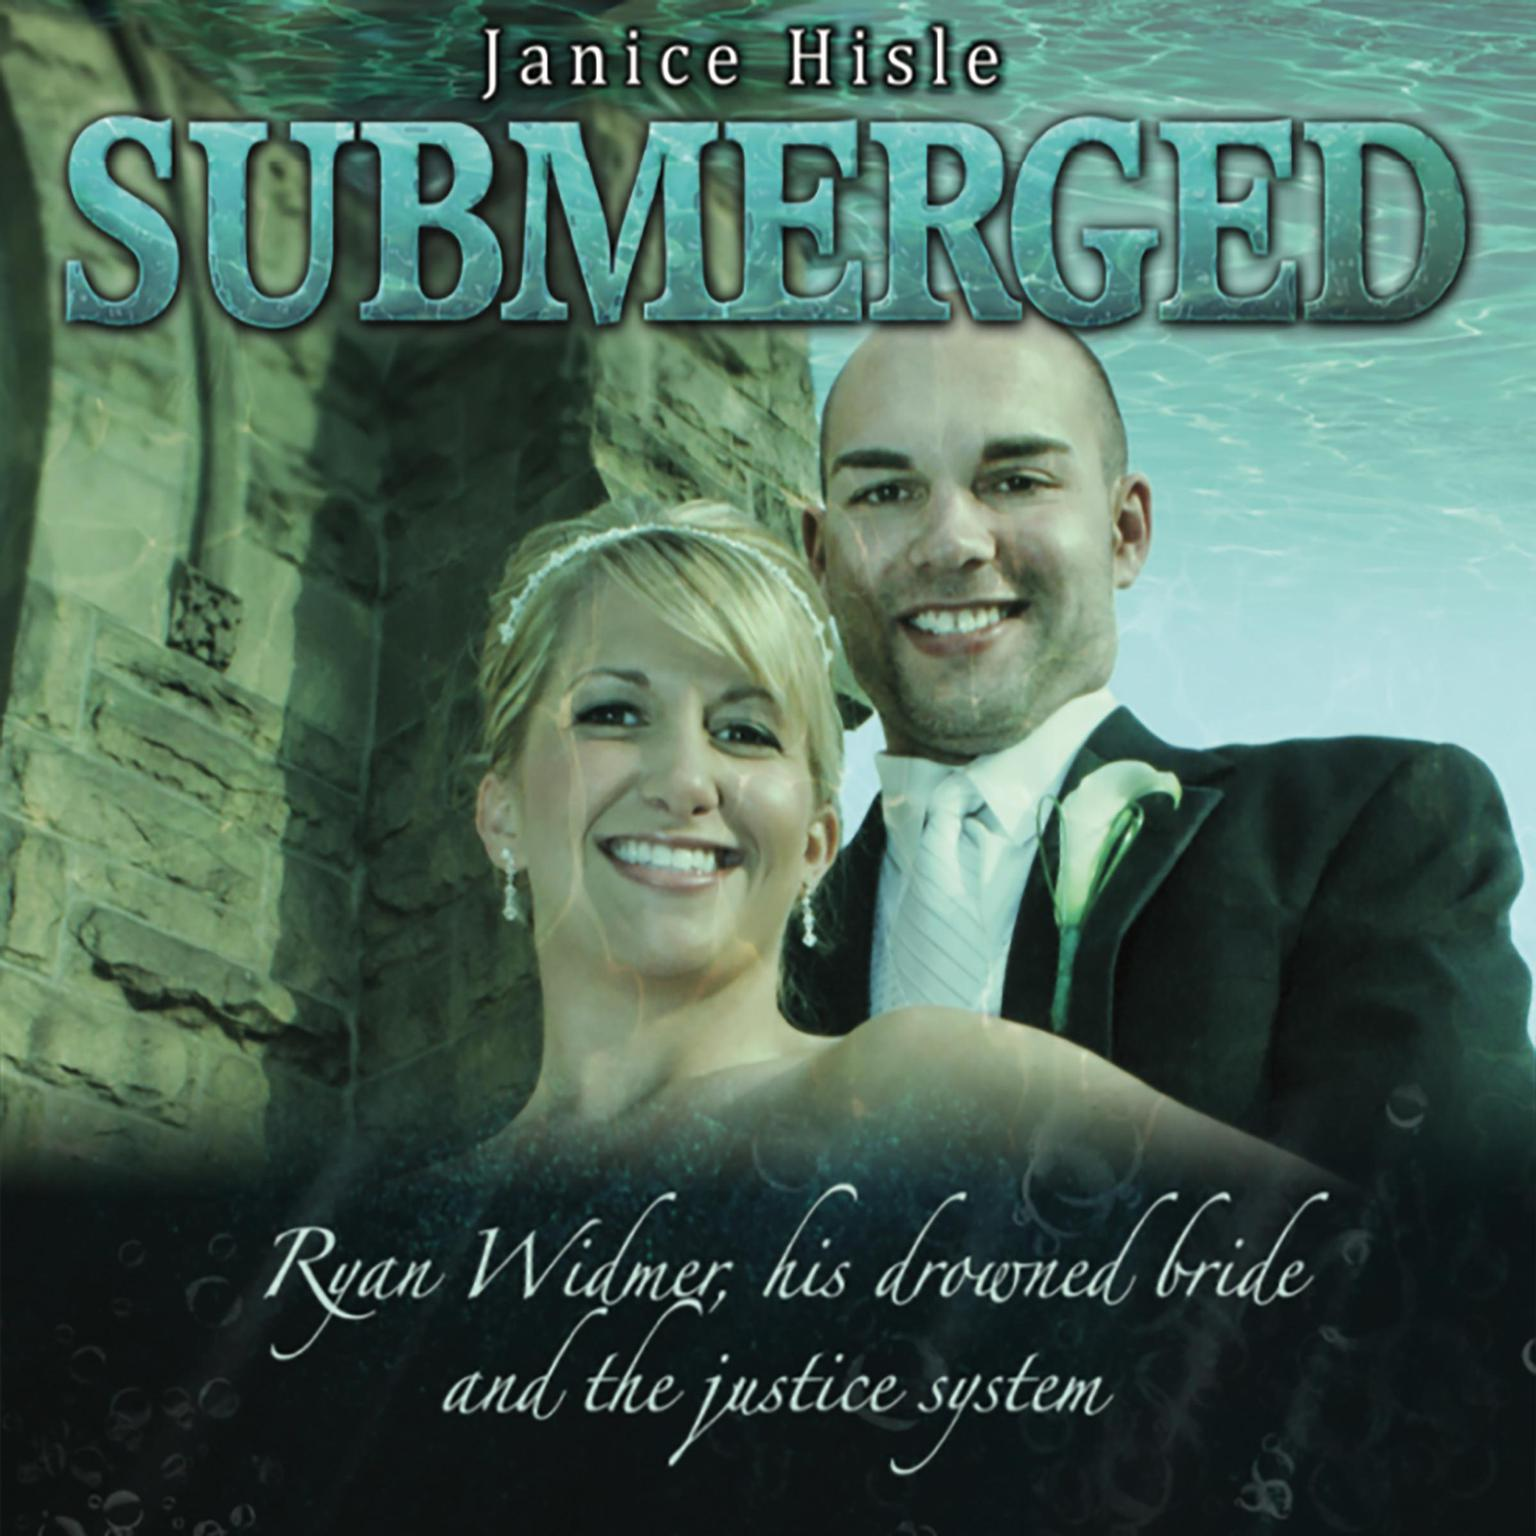 Image result for submerged janet hisle